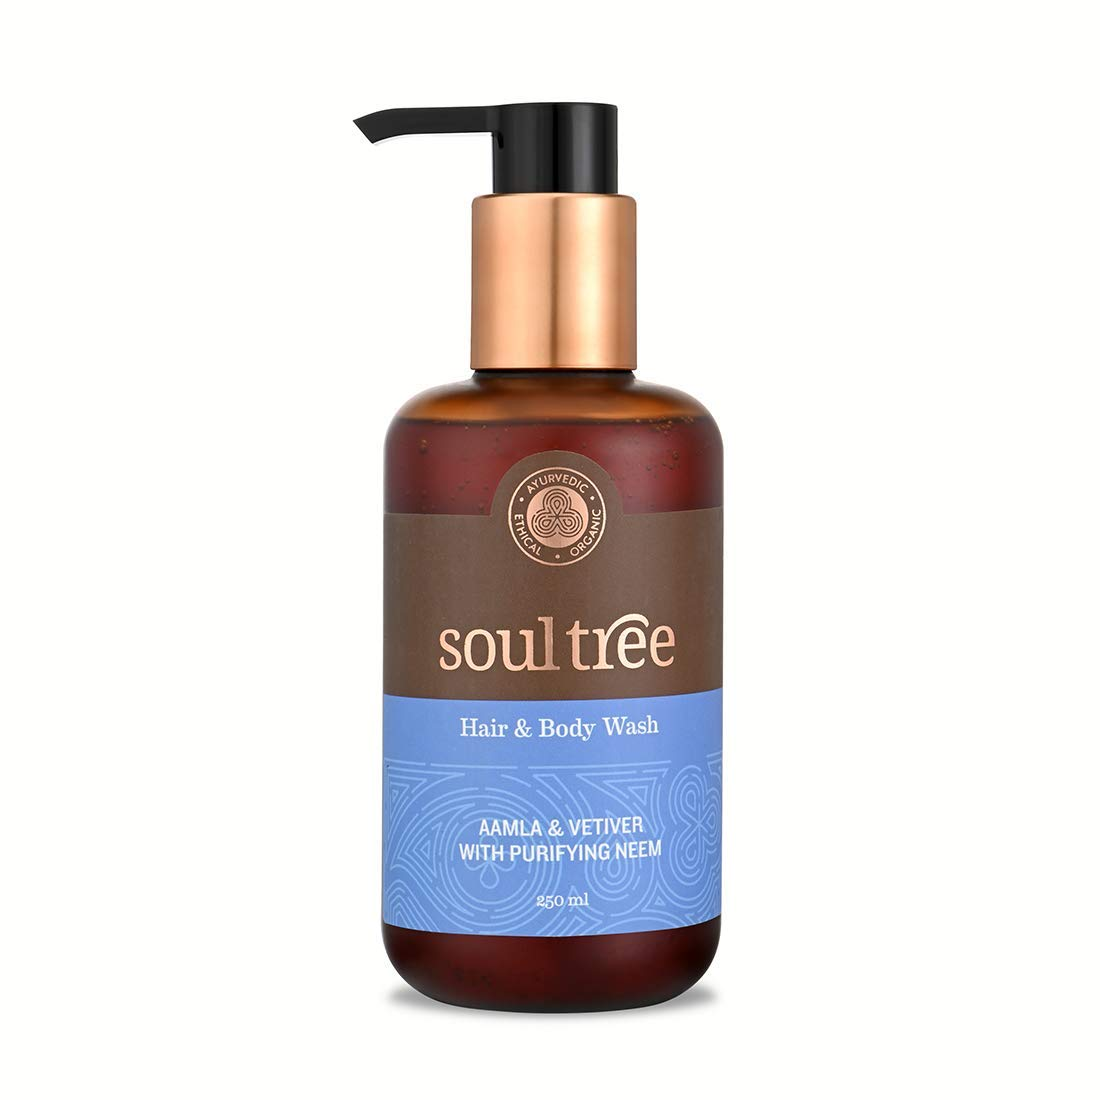 SOULTREE Hair & Body Wash For Men and Women | 100% Natural & Vegetarian Body Wash/Shower Gel With Aamla and Vetiver with purifying Neem